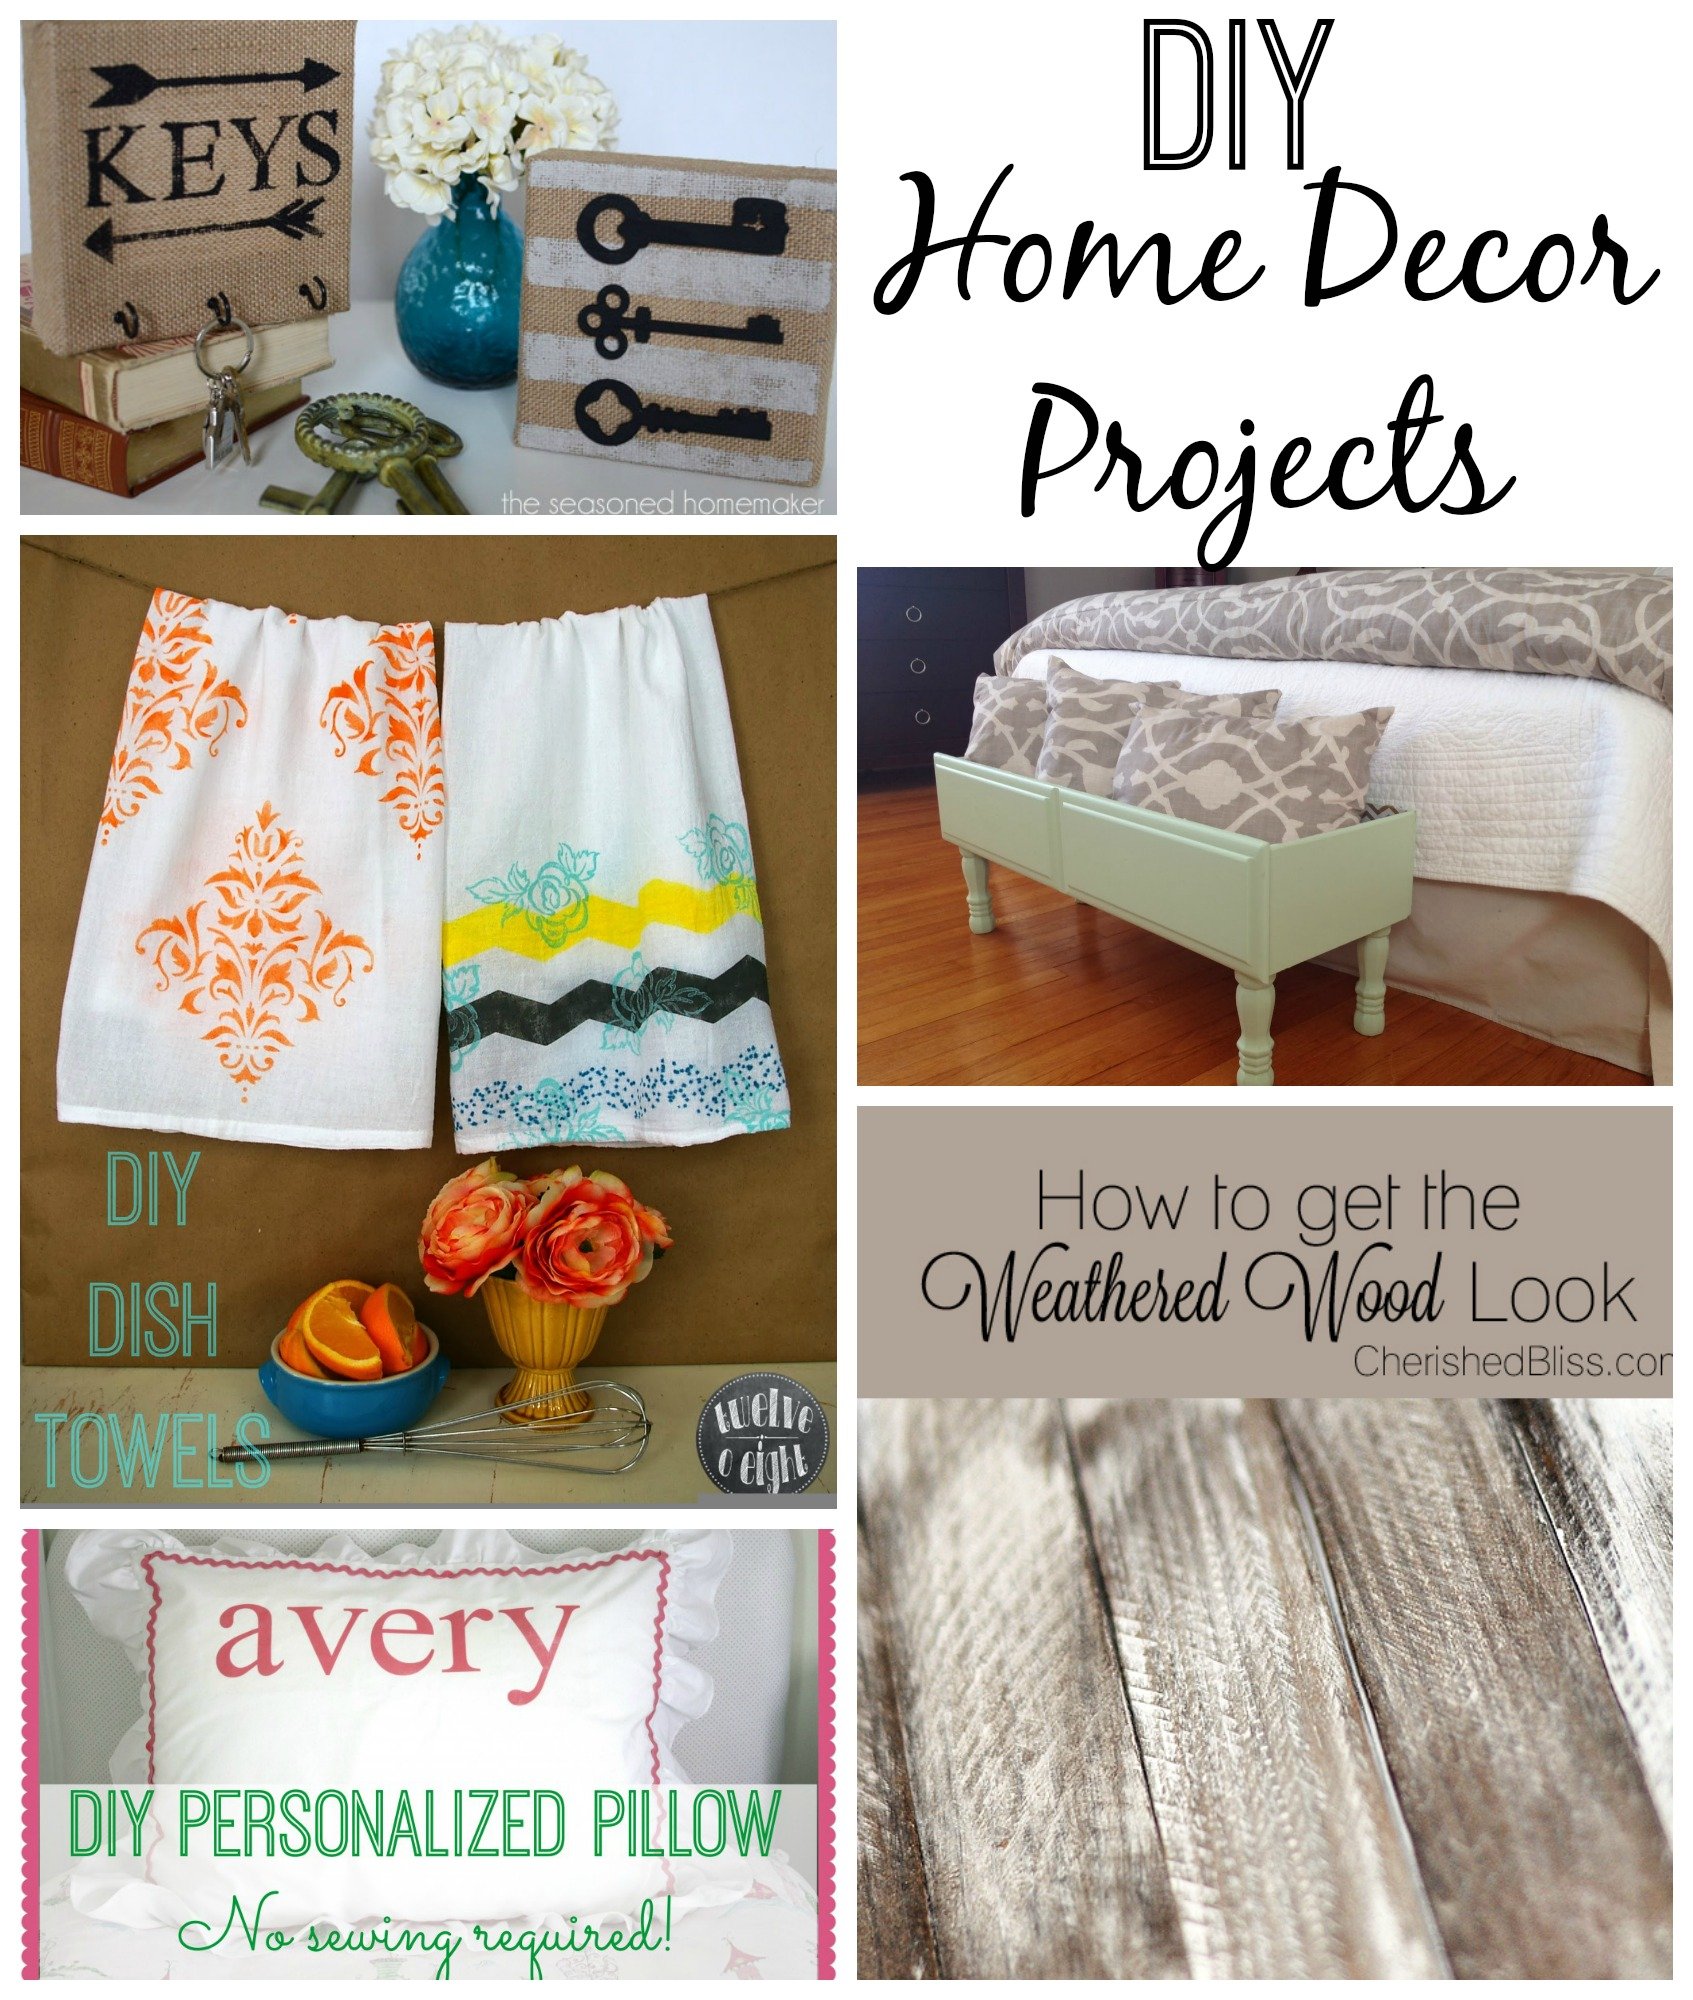 Diy home decor creative connection features making home base Diy home decor crafts pinterest